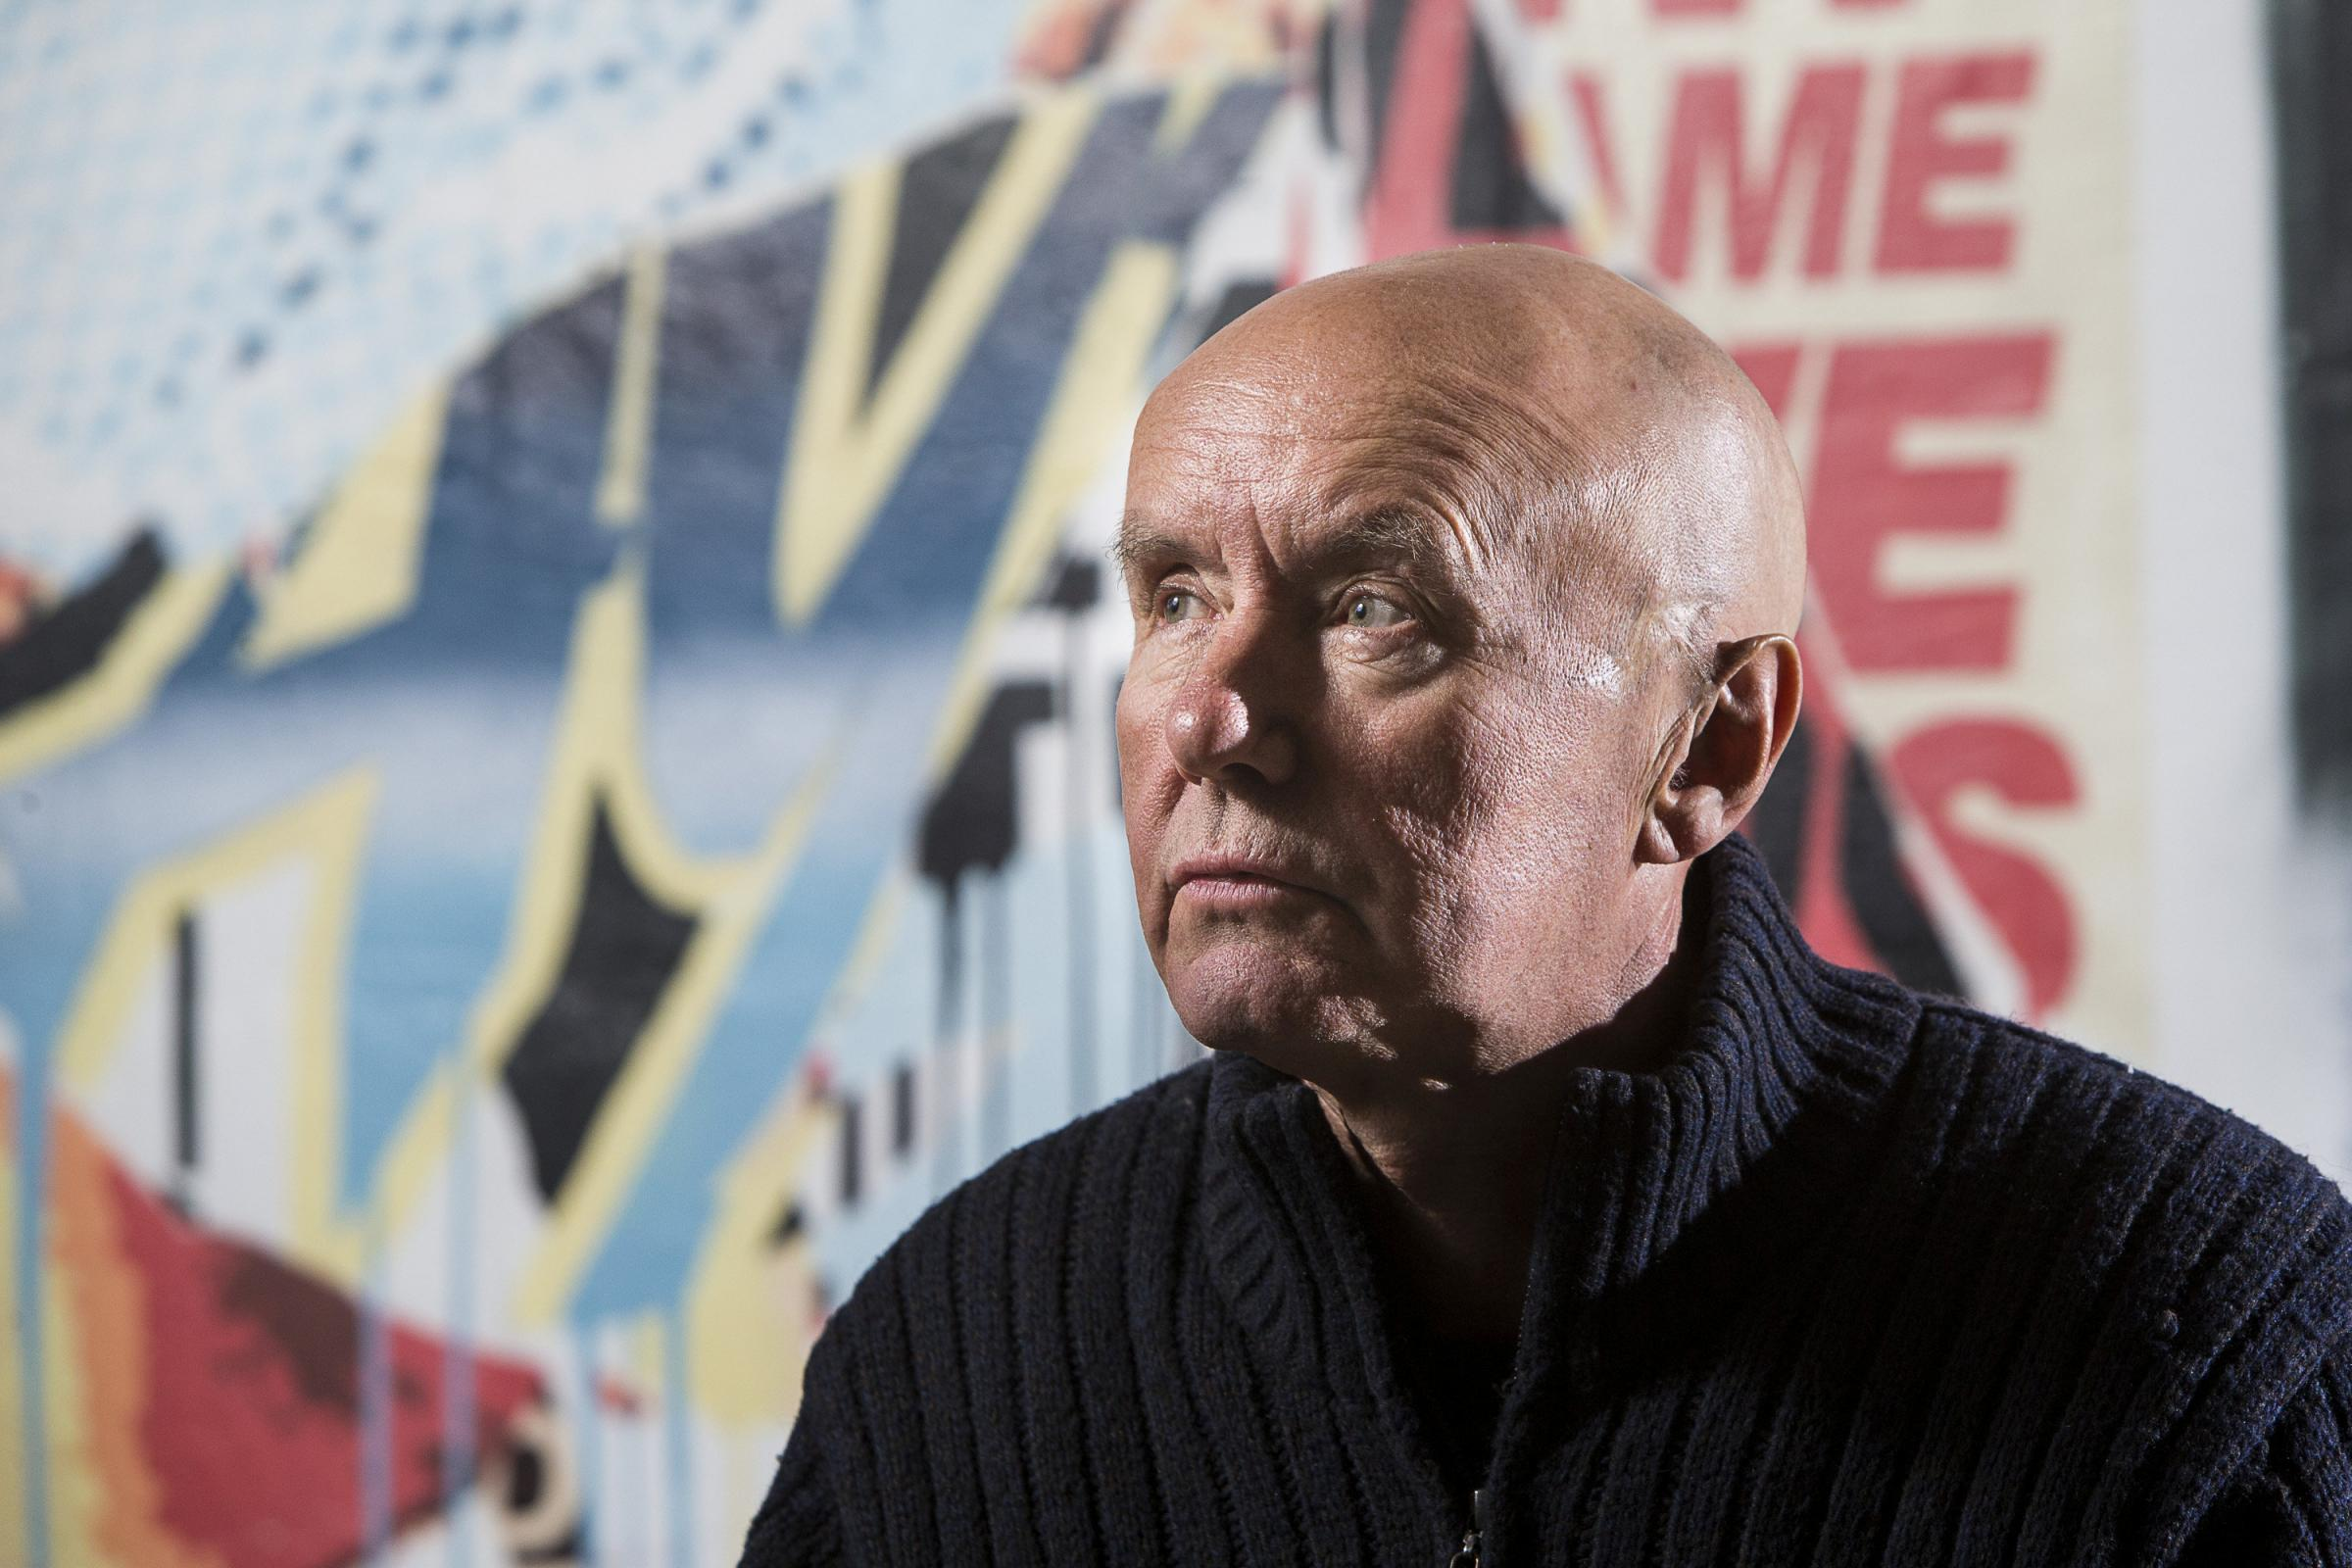 Trainspotting author Irvine Welsh's former housing estate to get its own book festival (Photo: SWNS)